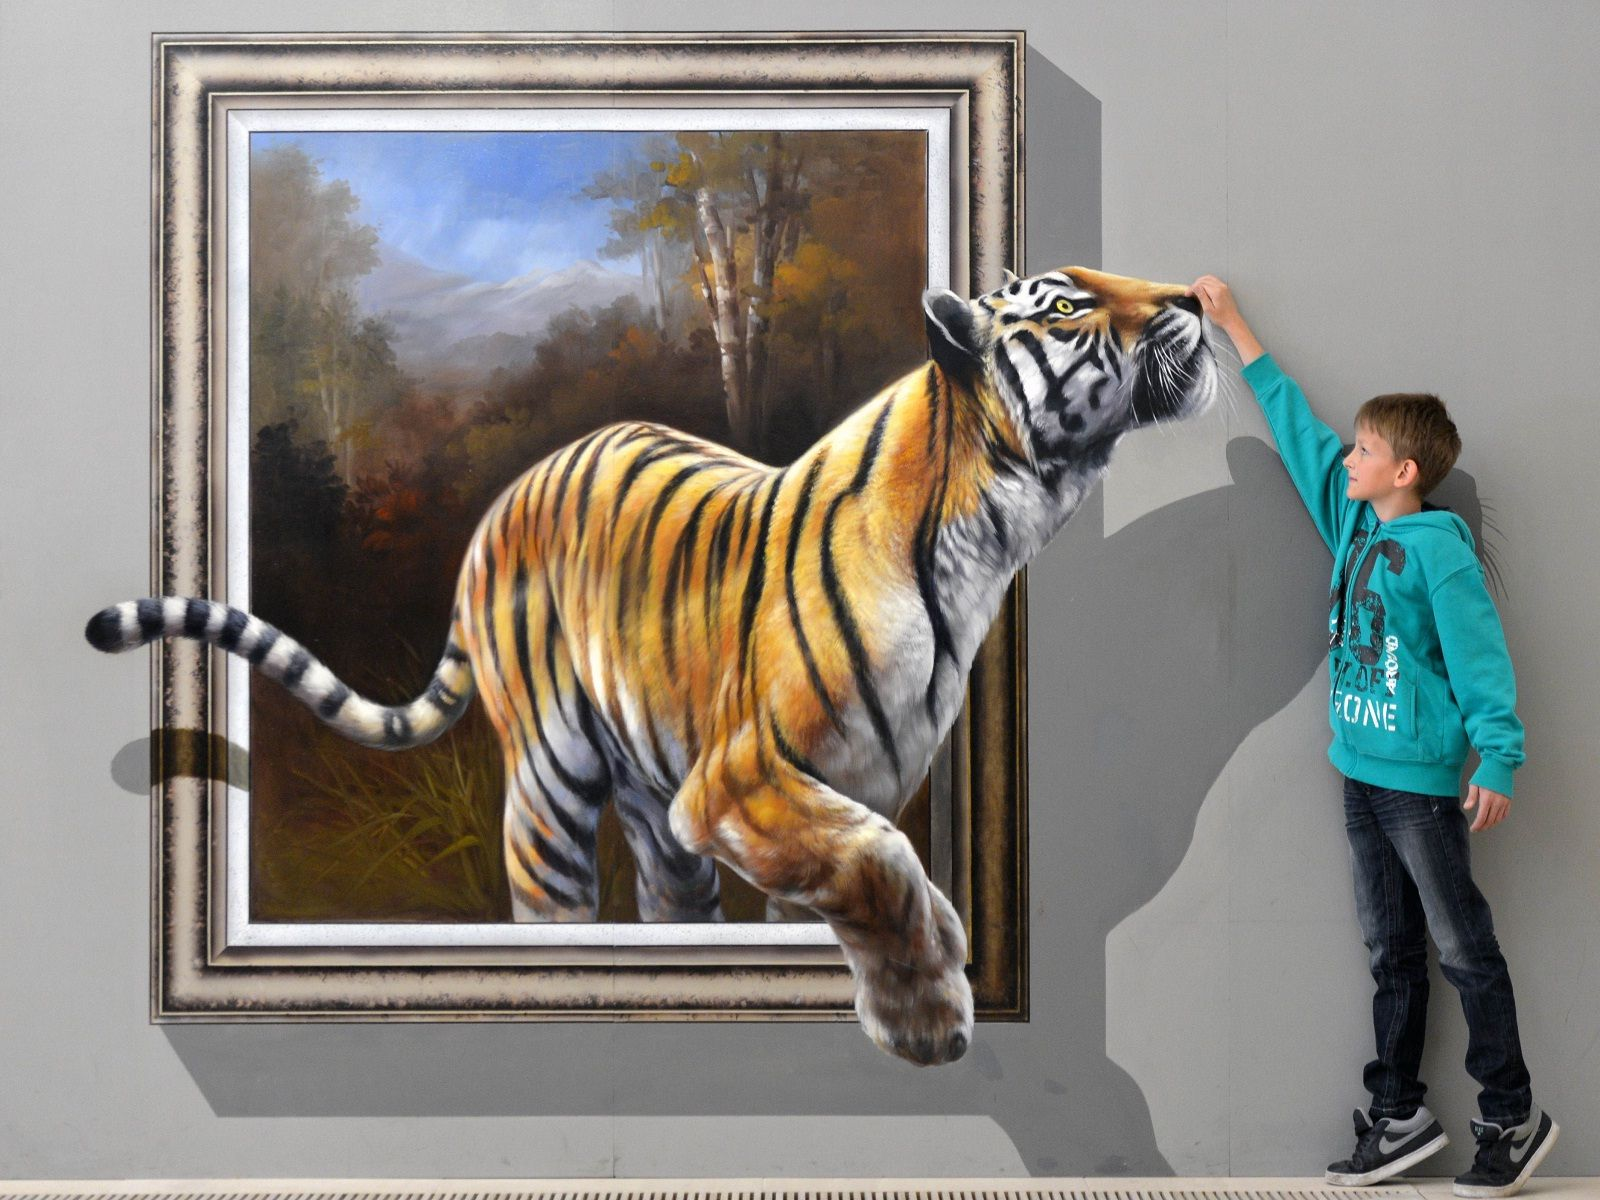 3D-painting-poster-of-baby-and-tiger.jpg (1600×1200)